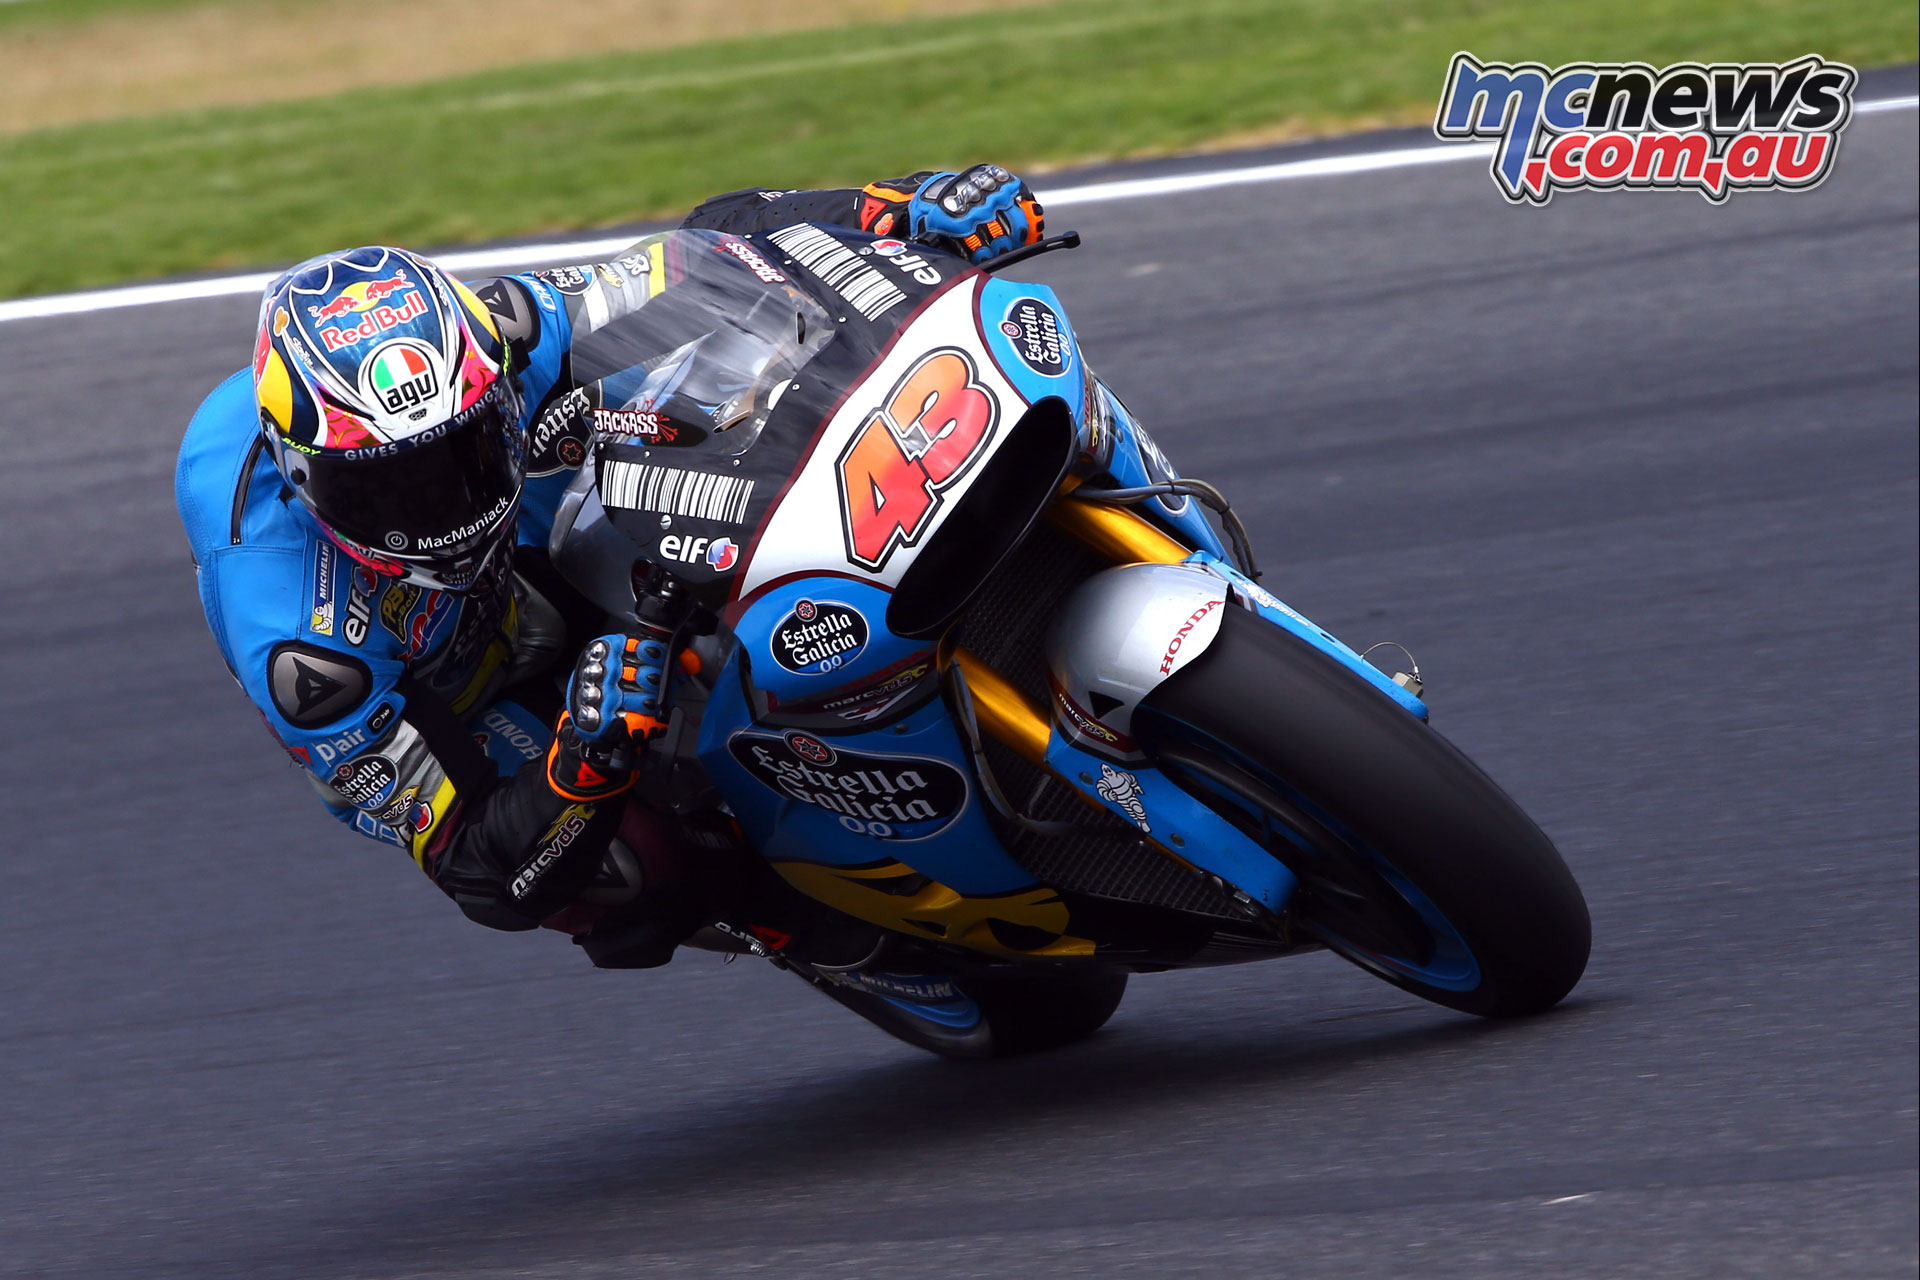 Jack Miller looks to continue strong form at COTA   MCNews.com.au